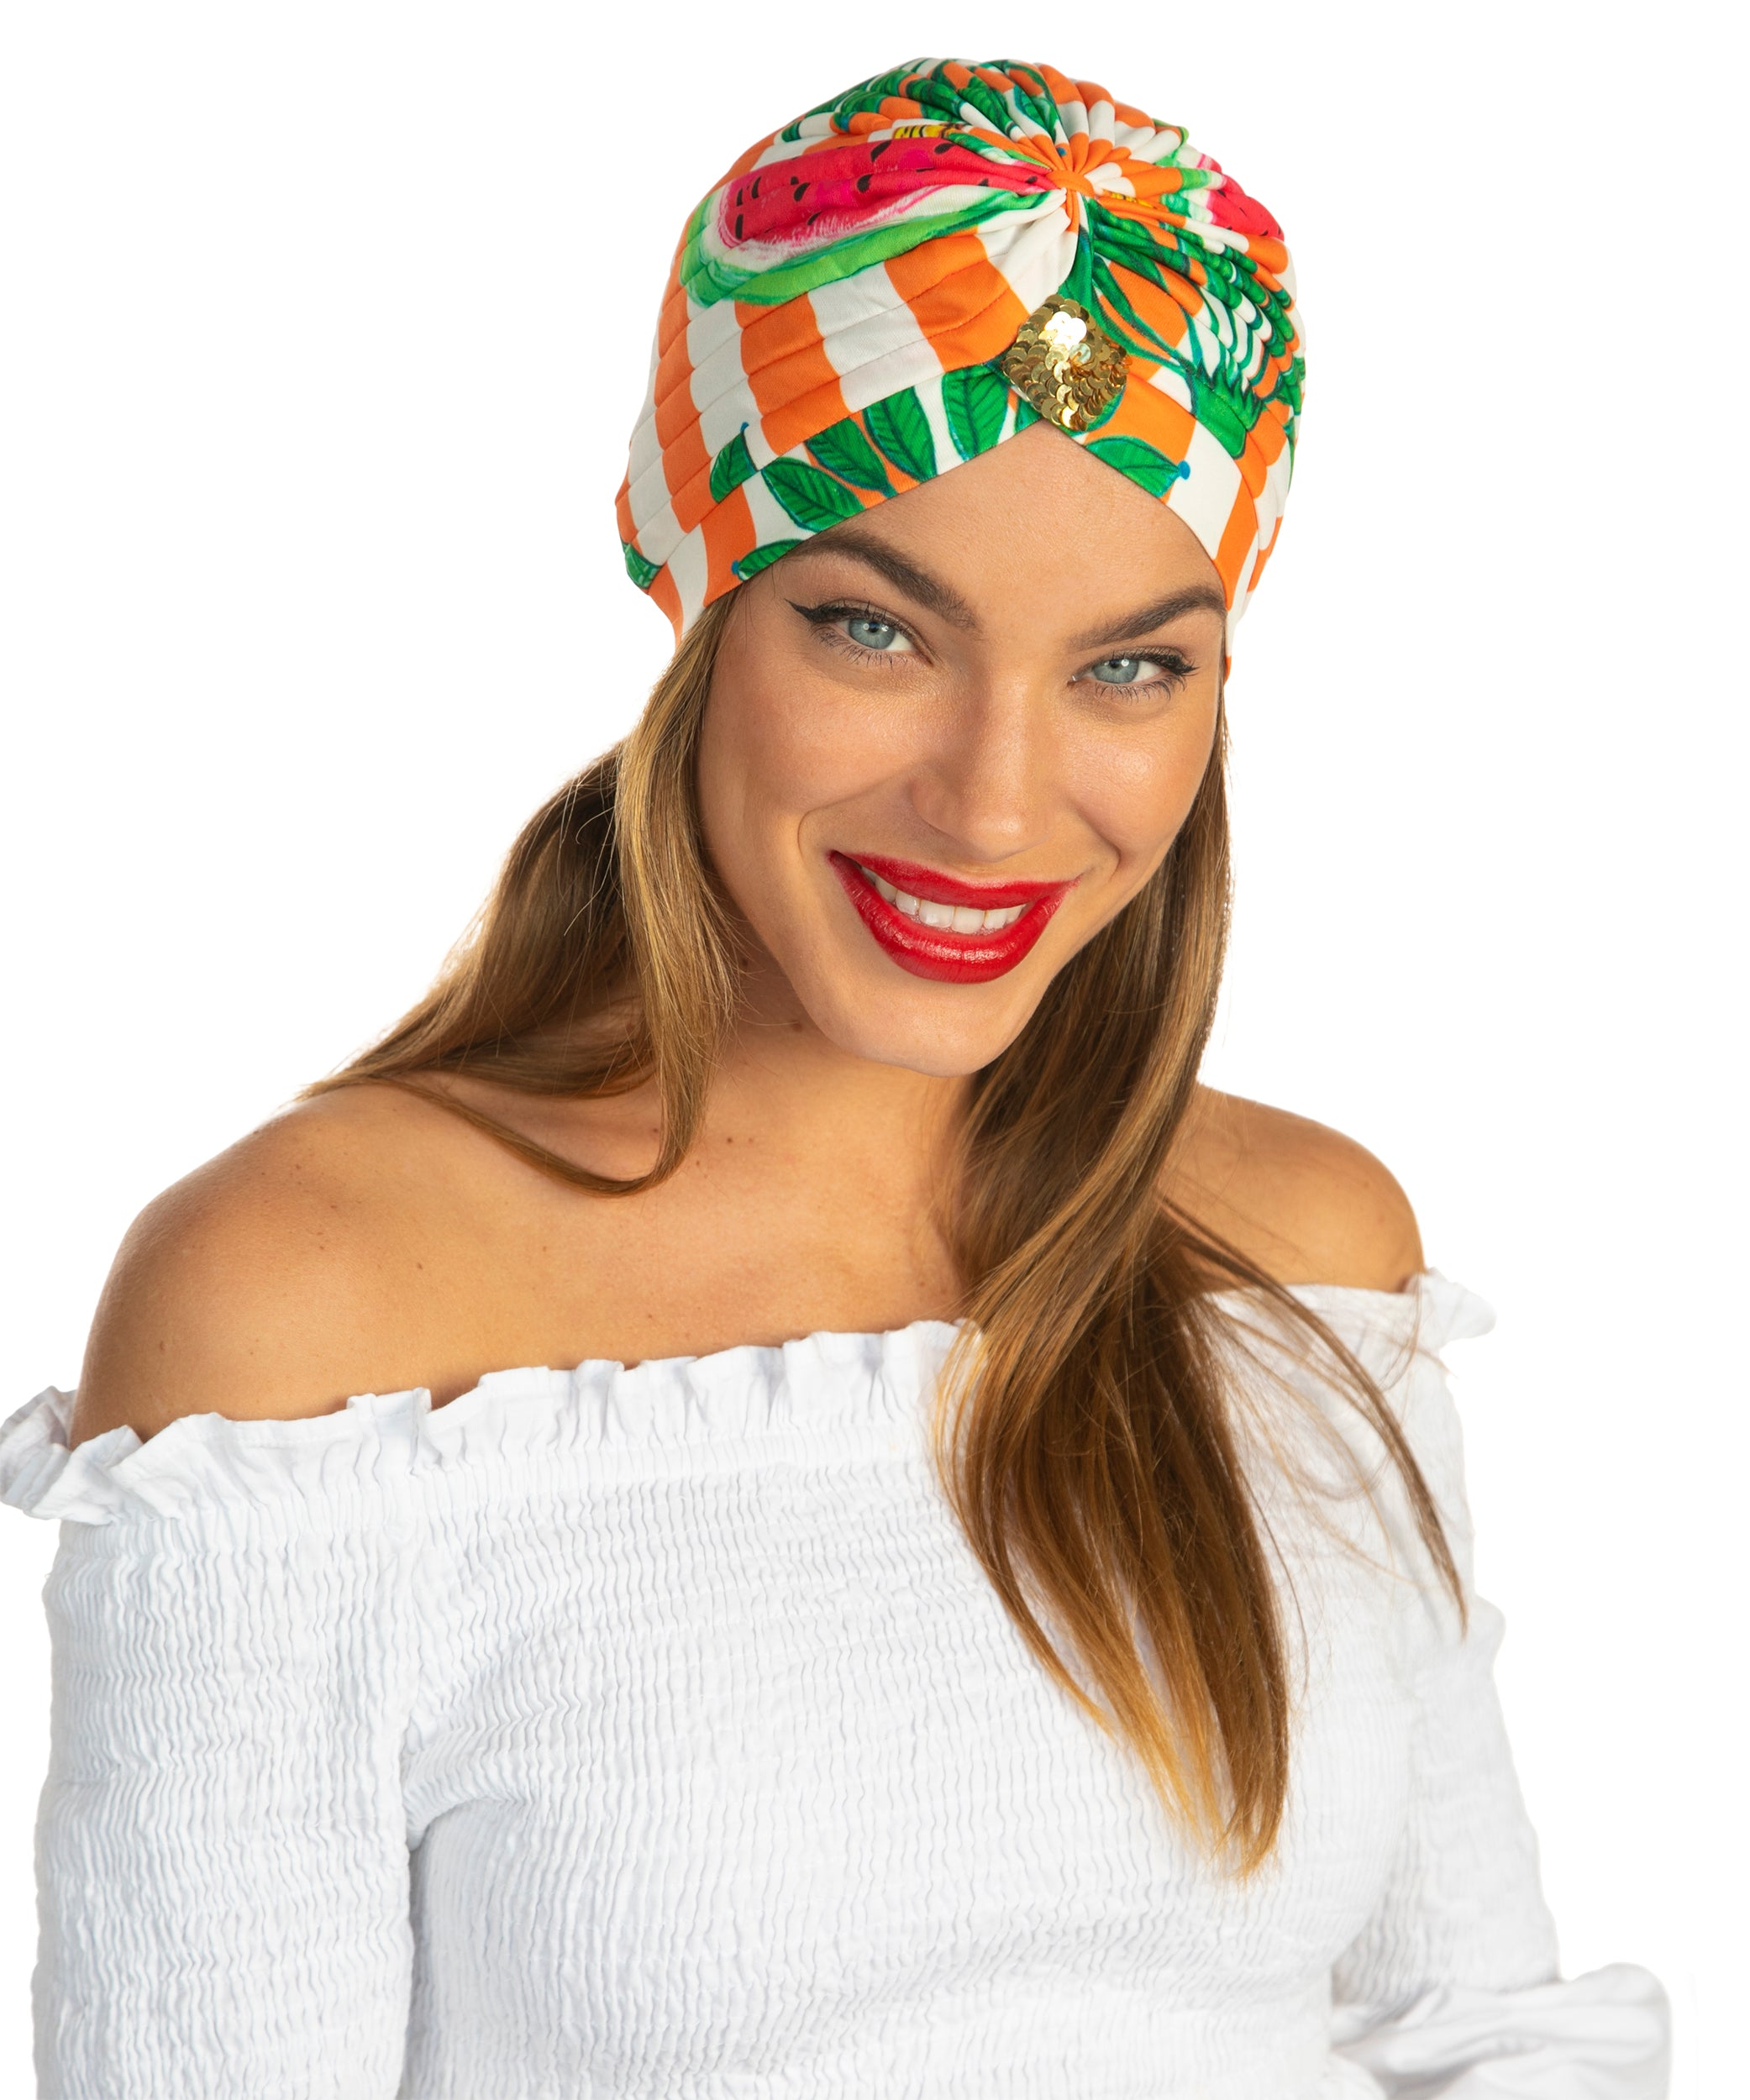 The Carmen Miranda Turban by Bonita Collective